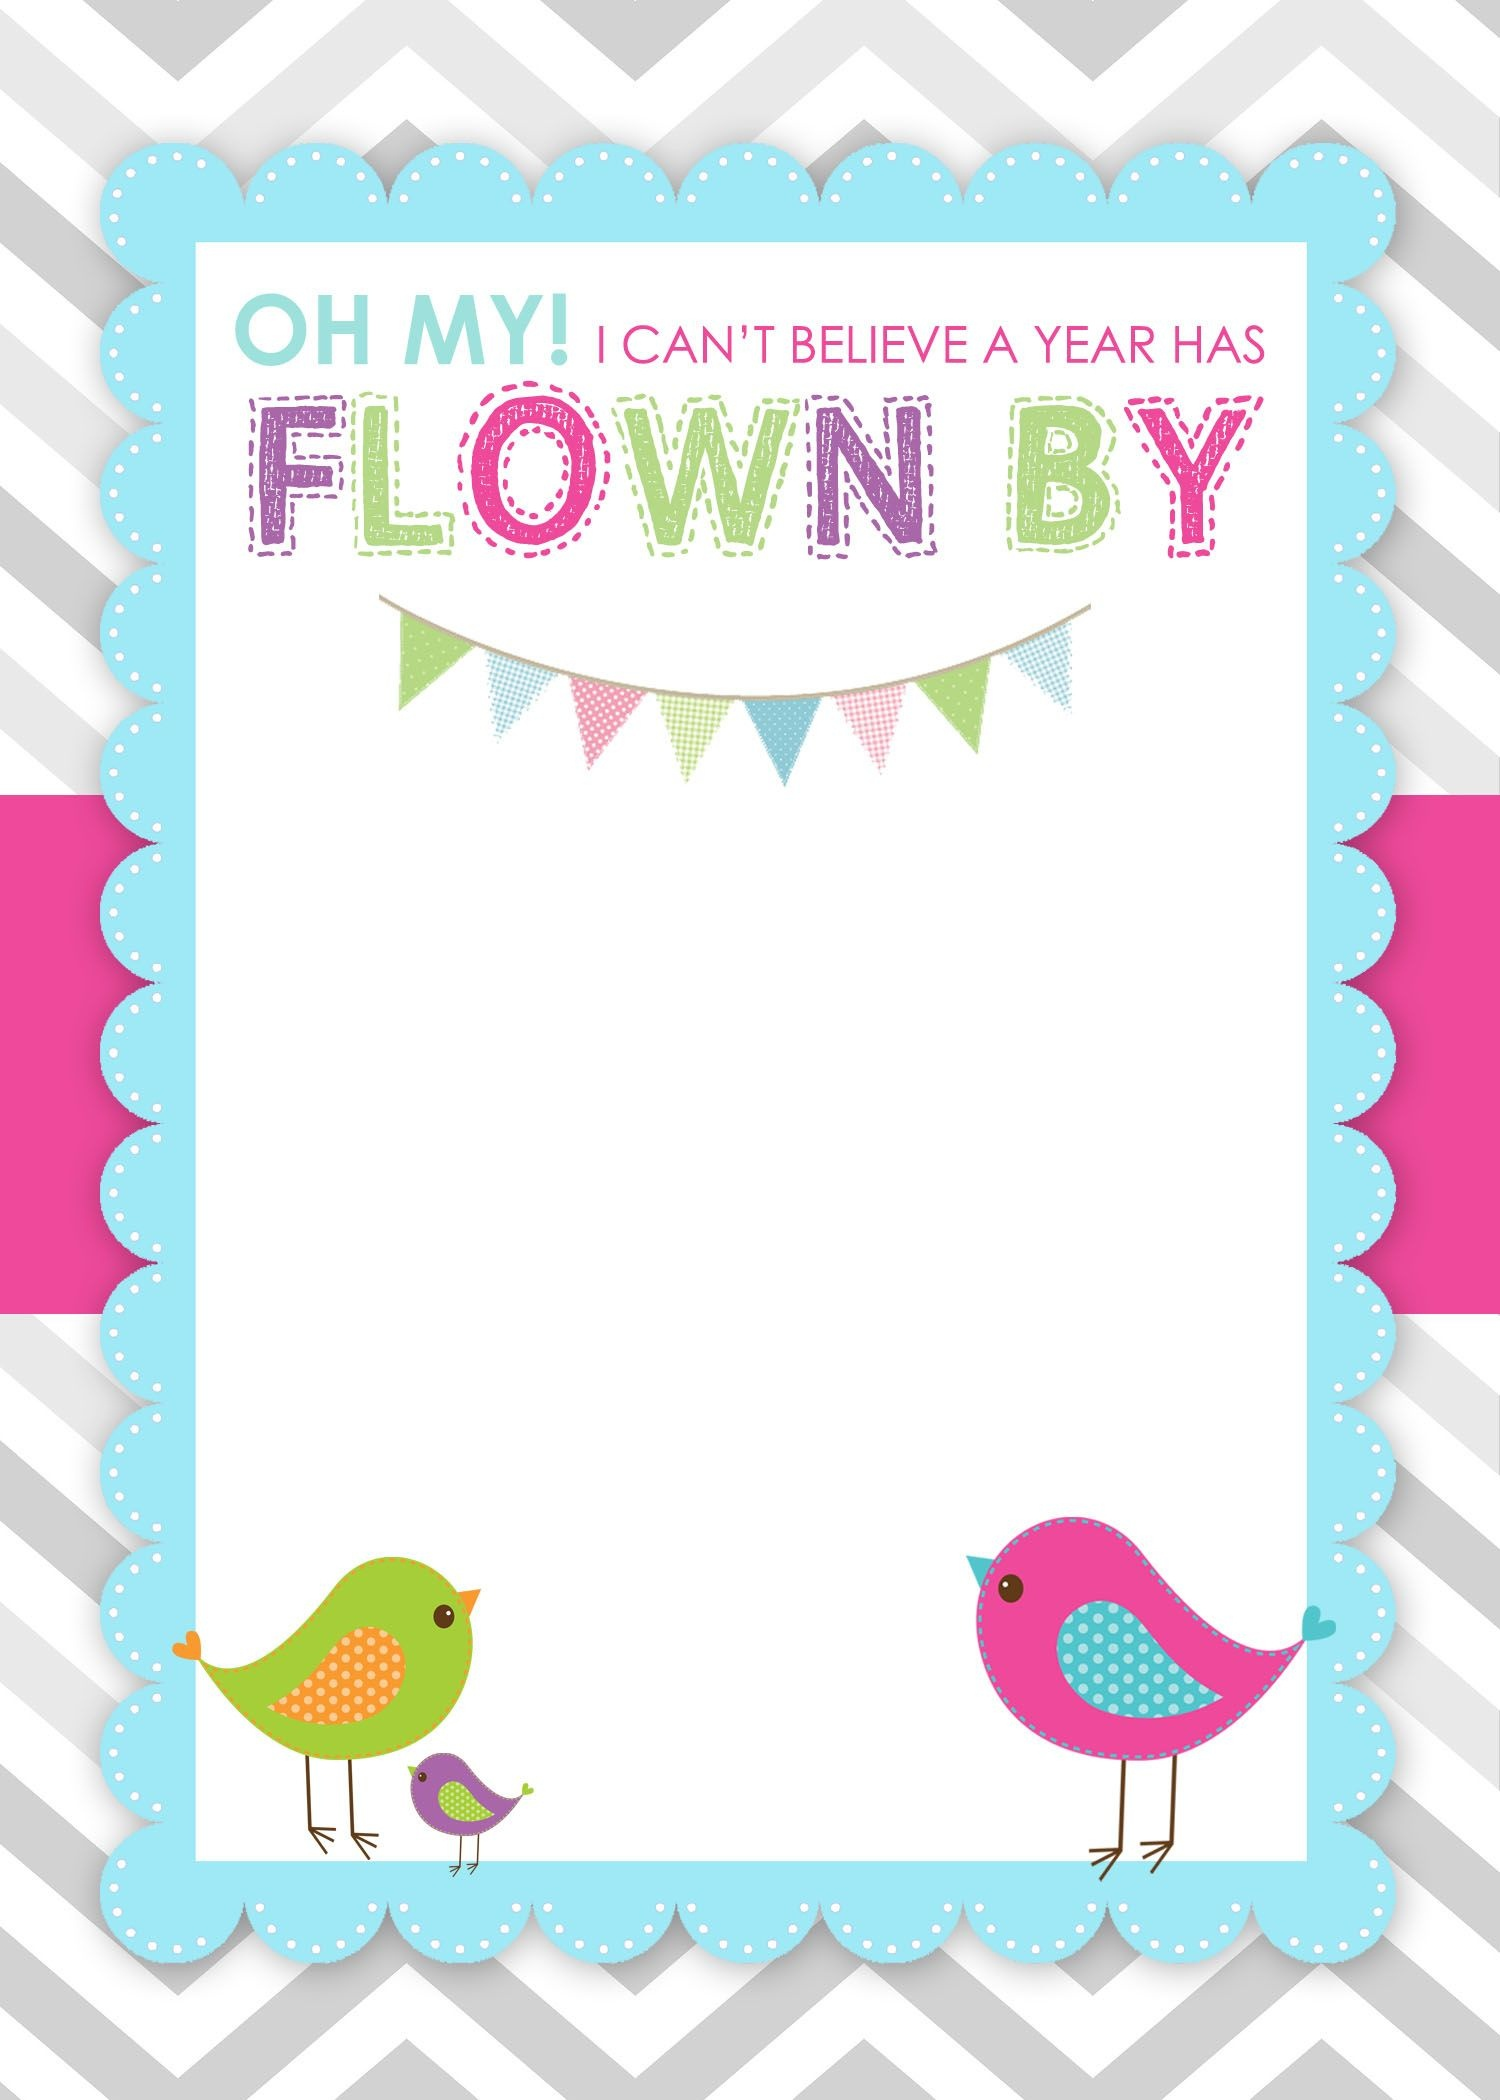 Bird Birthday Party With Free Printables | Creations | Free Birthday - Free Stork Party Invitations Printable